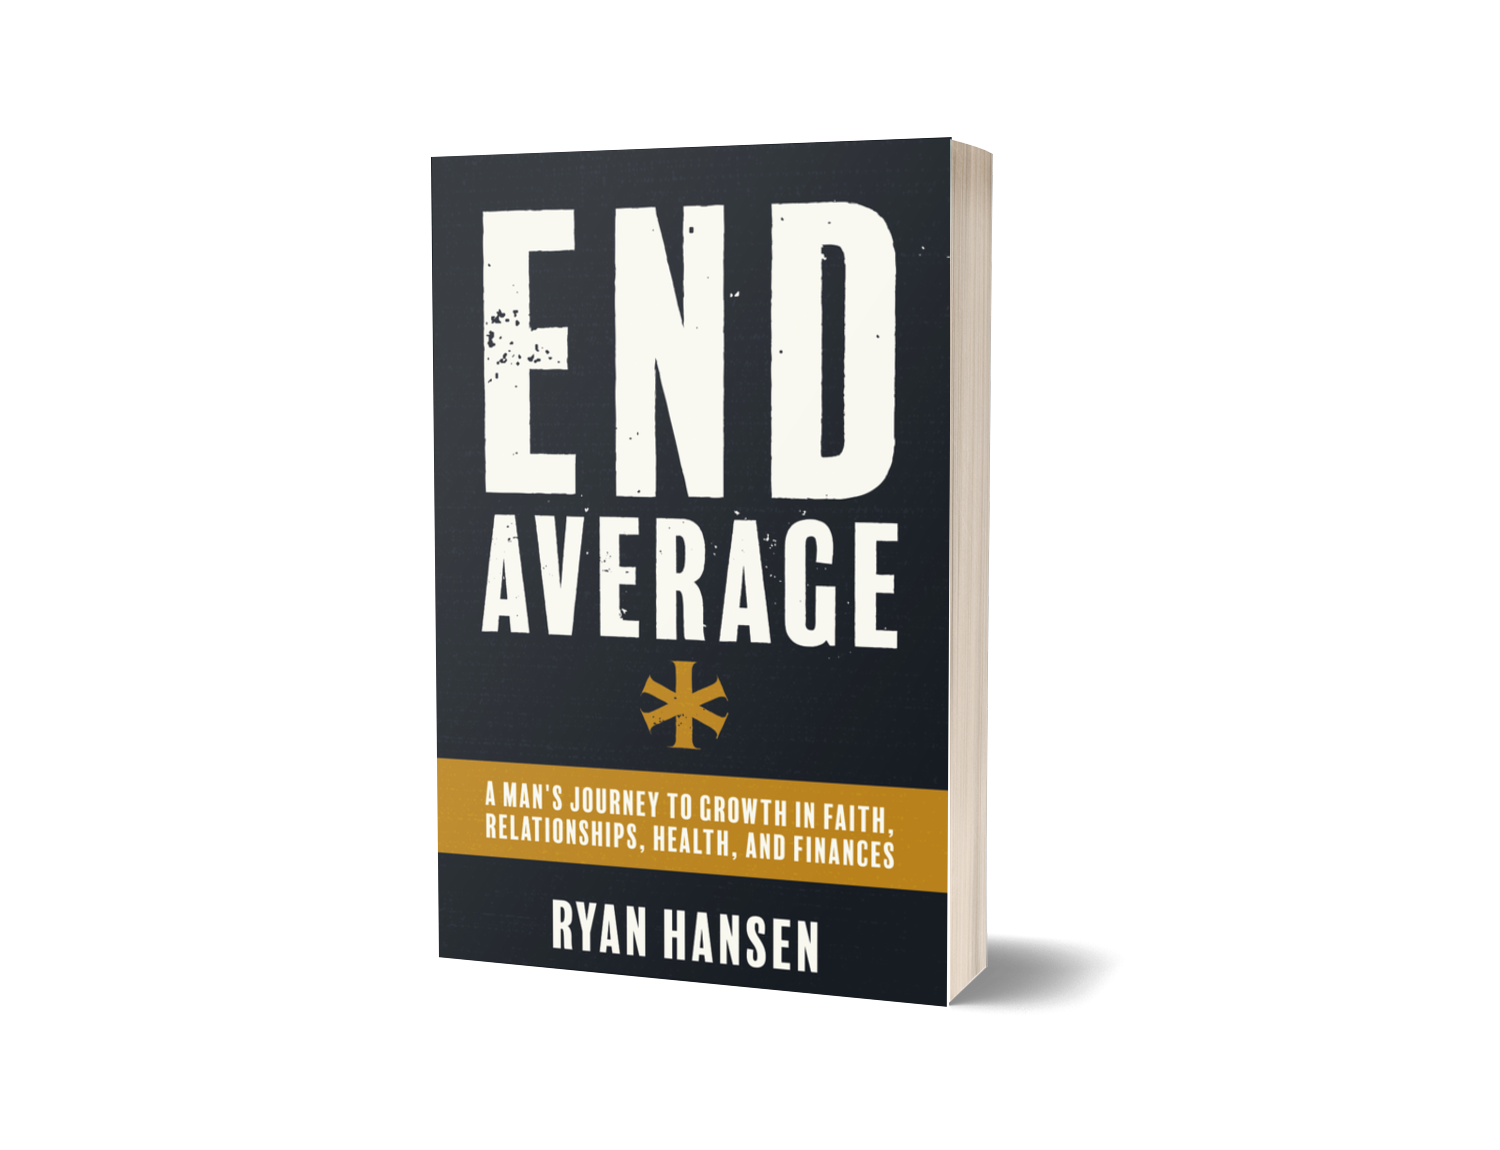 End Average standing book